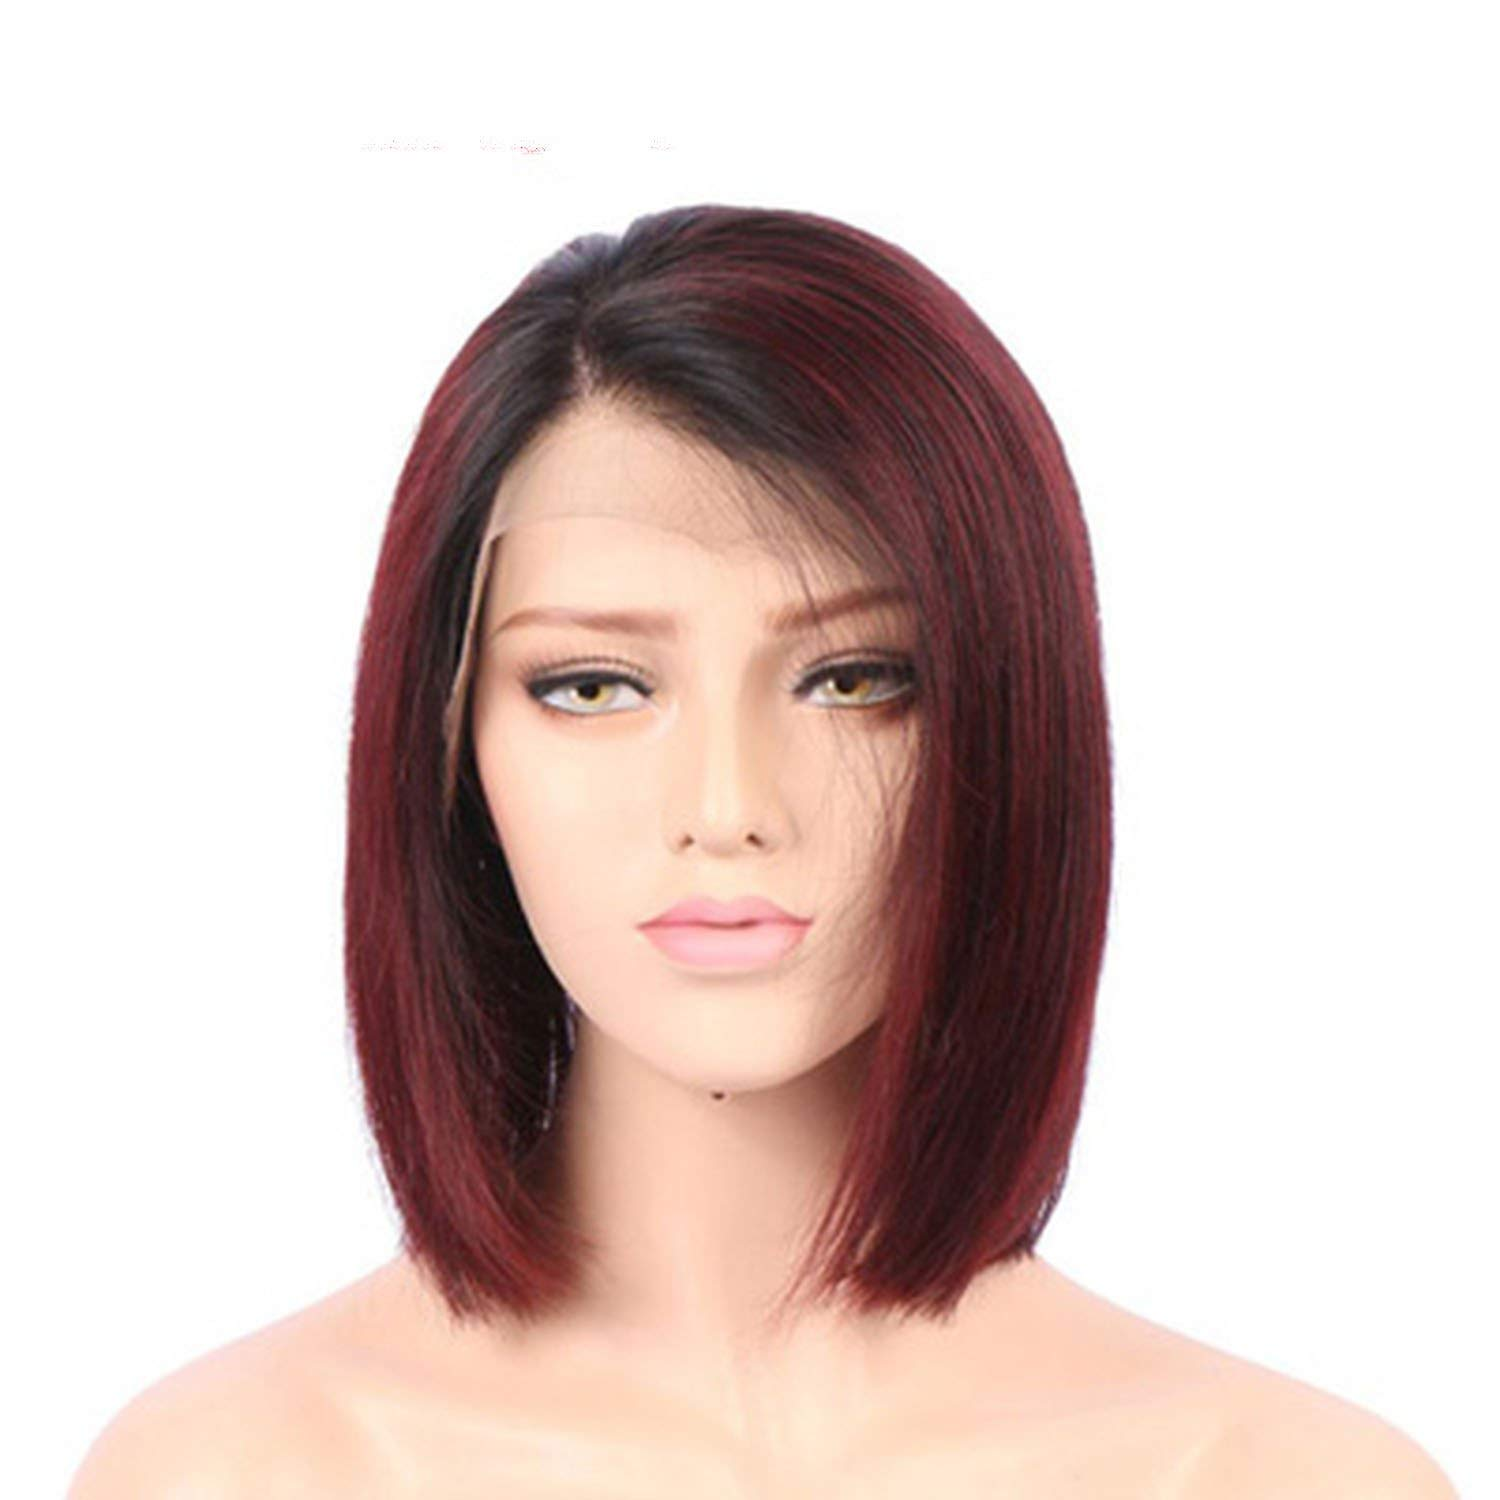 B07SQLVD8W Lace Front Short Human Hair Wigs For Black Women Straight Lace Front Wig Ombre Bob Lace Wig Remy Wigs 150%,#99J,10inches 61EGJia2FHL._SL1500_